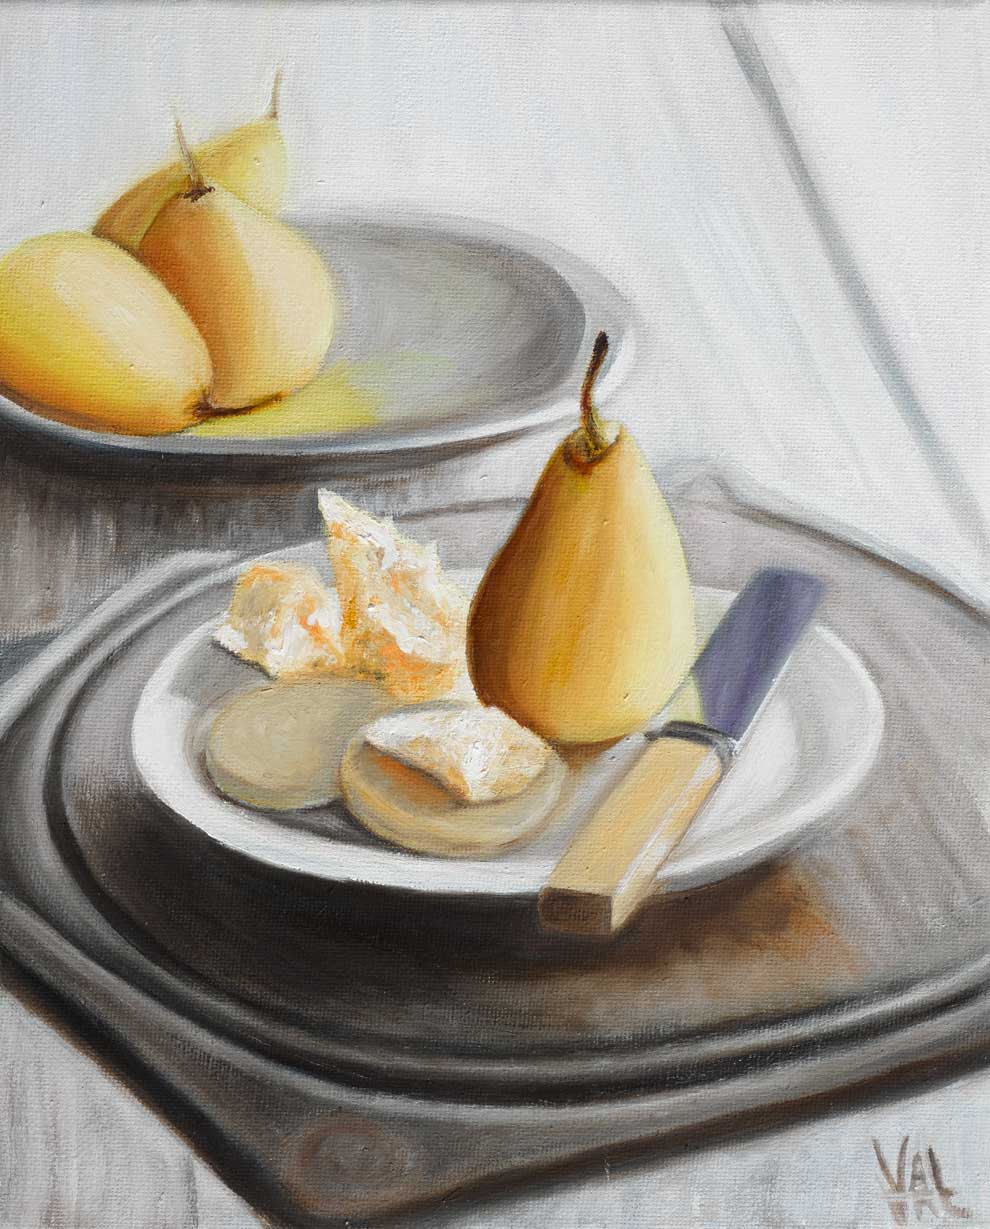 still-life-with-pears-31hx25w-cm_990